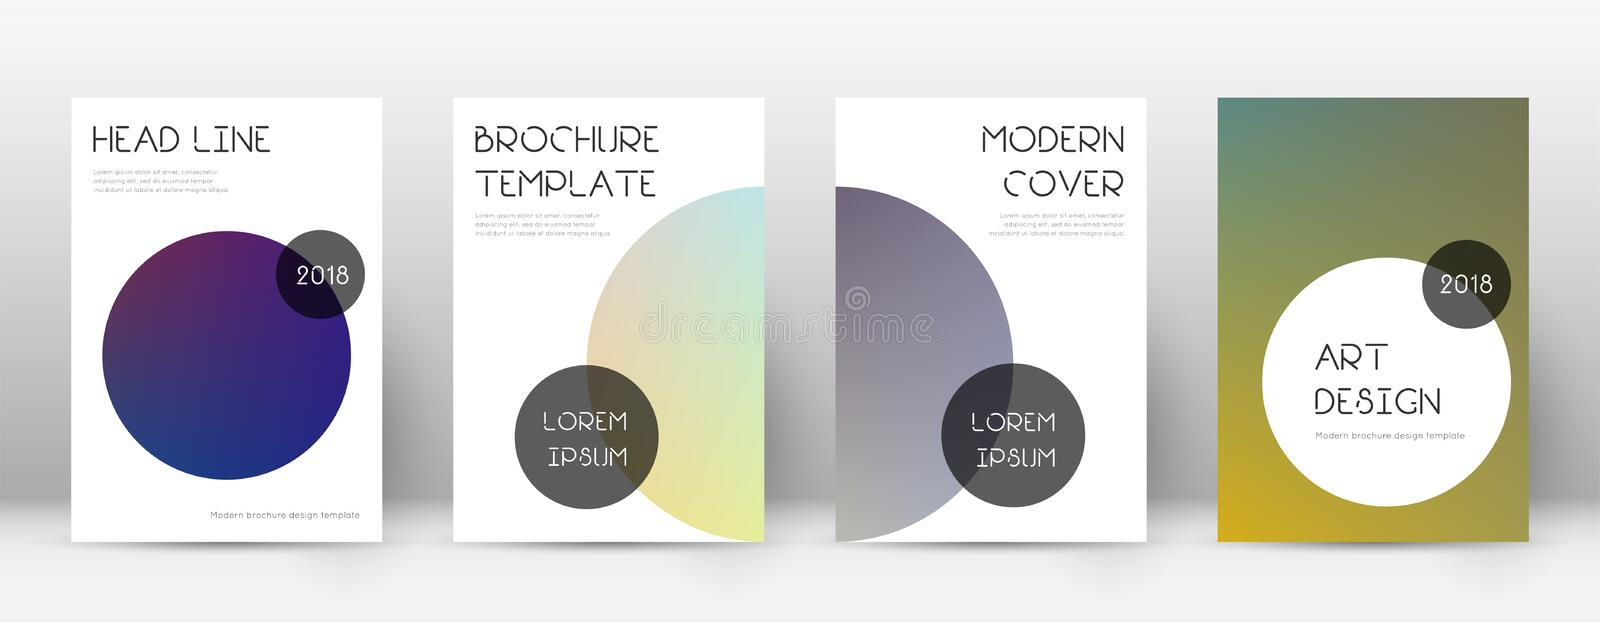 Flyer layout. Trendy lovely template for Brochure, Annual Report, Magazine, Poster, Corporate Presentation, Portfolio, Flyer. Beauteous color transition cover royalty free illustration